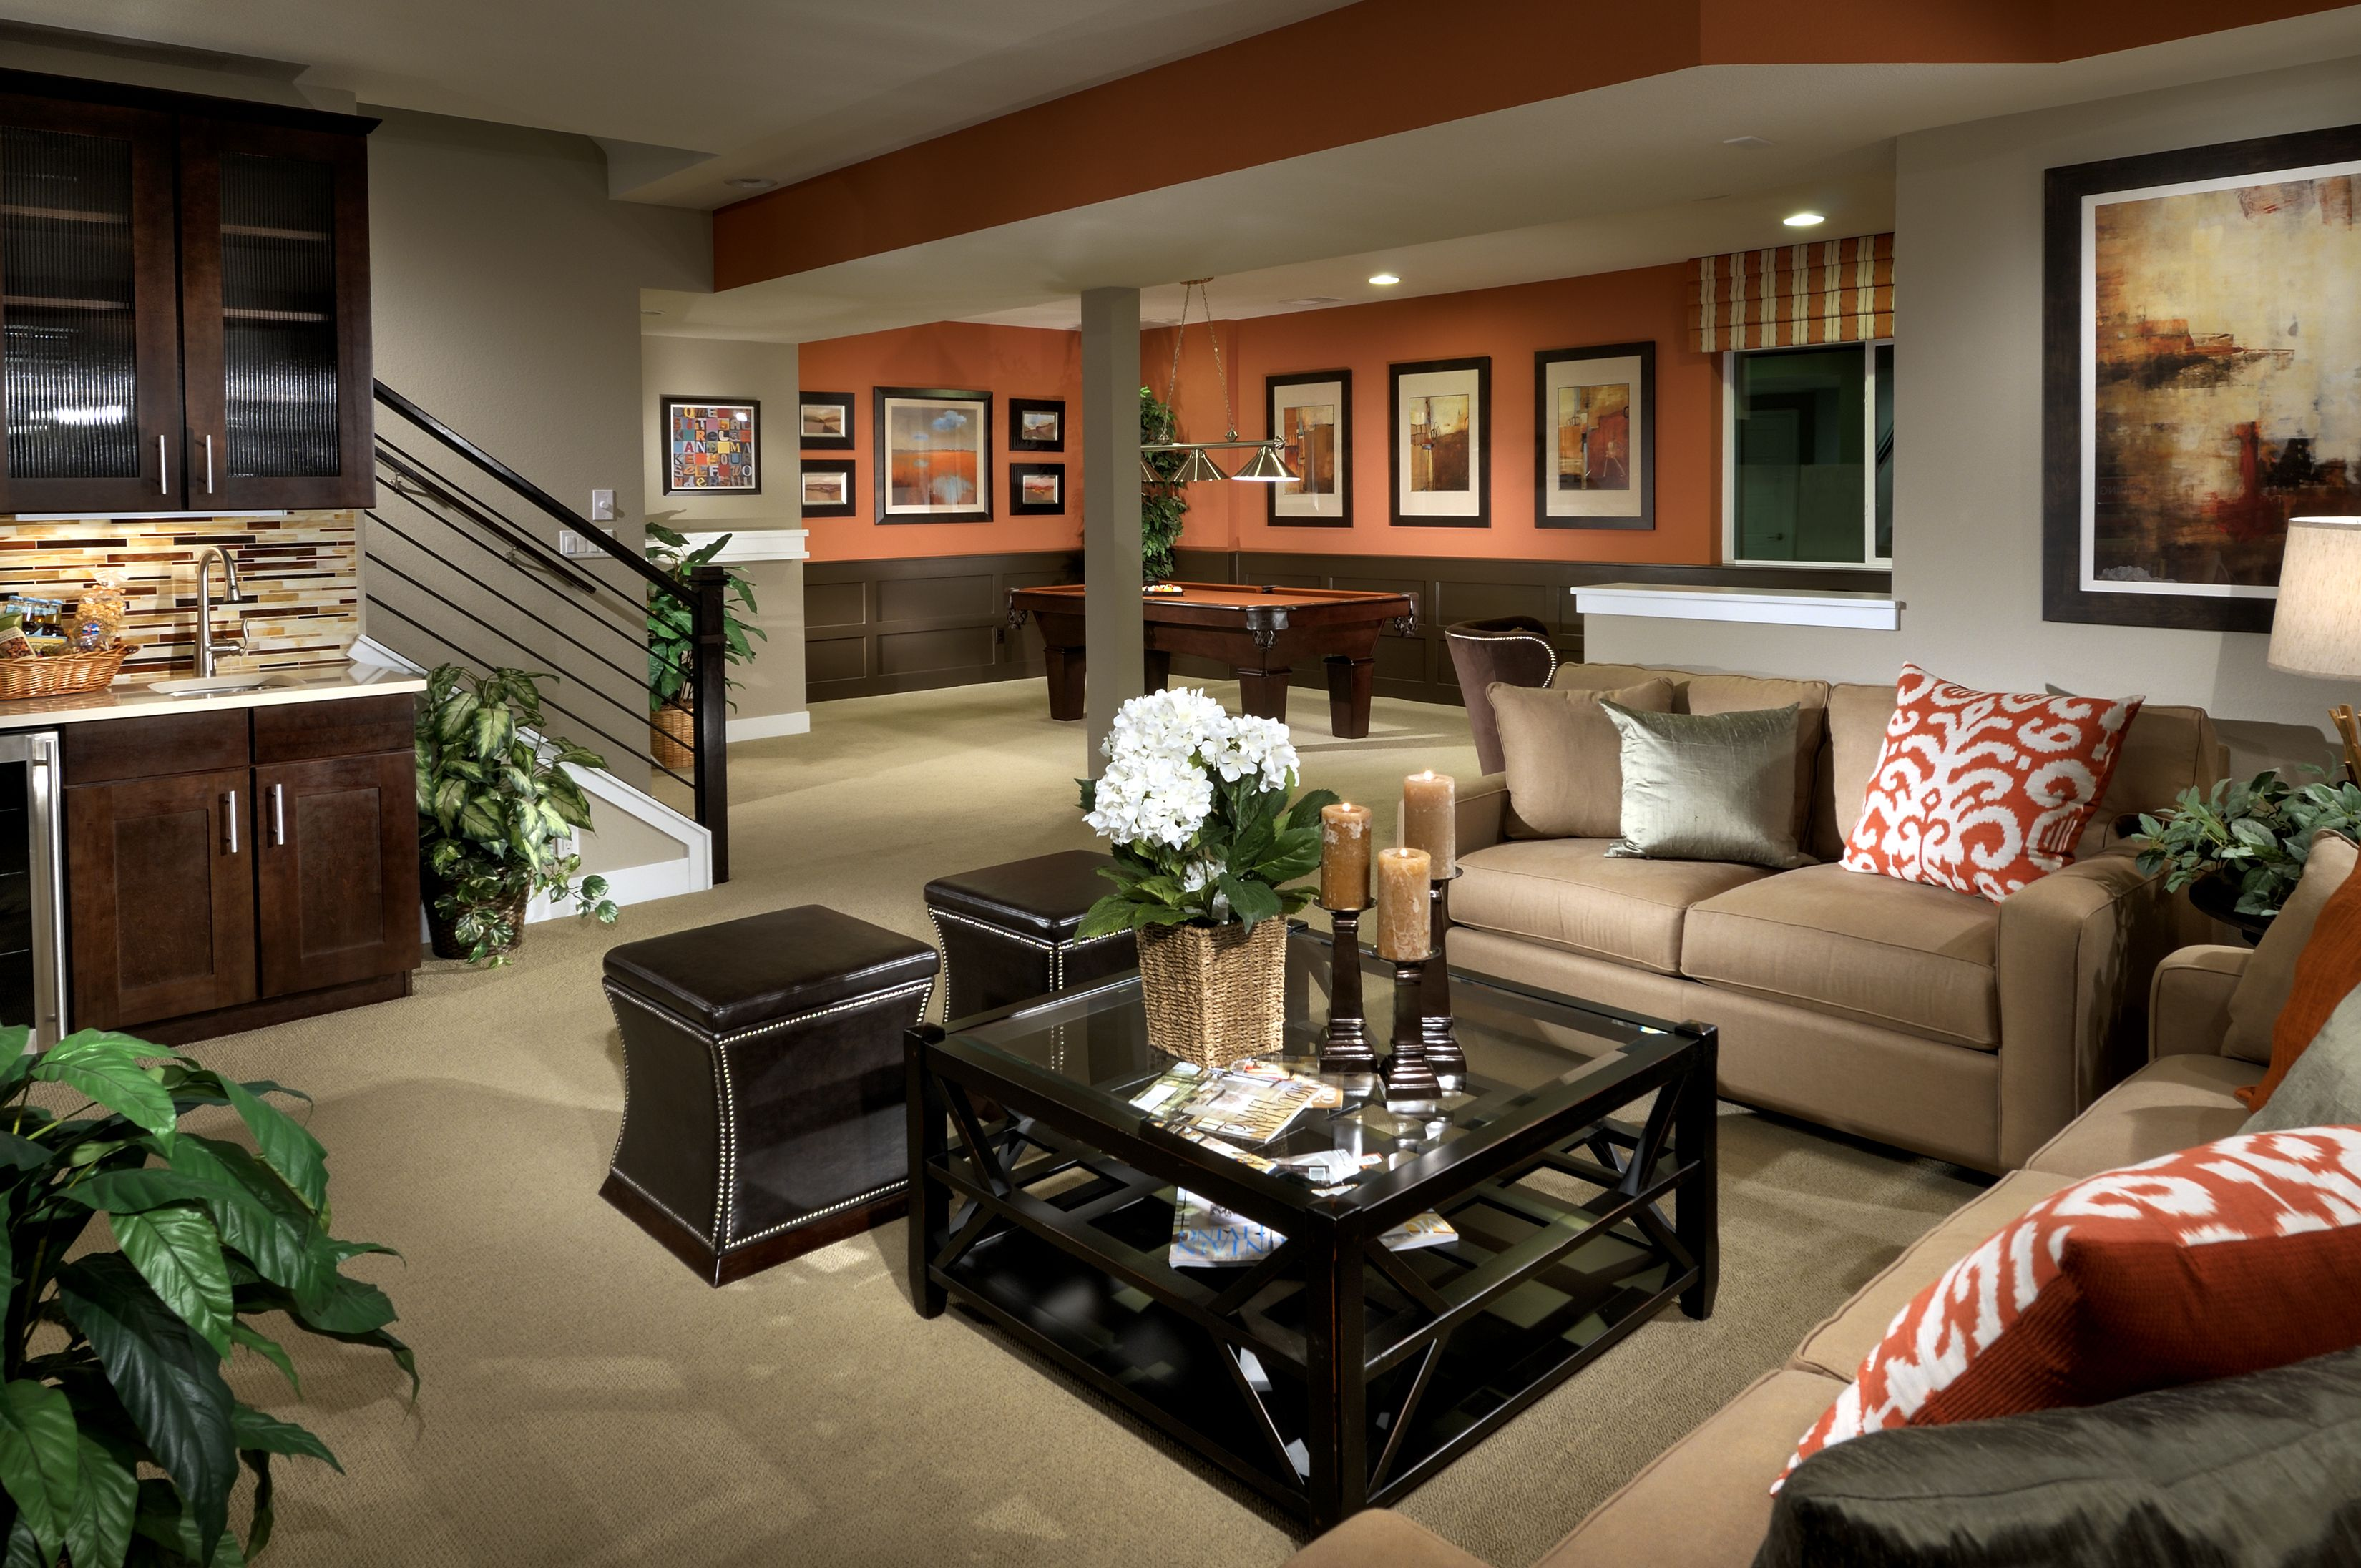 Basement Living Room Designs Fair Furnished Basement Great Room From Parkside At Ridgegate Inspiration Design